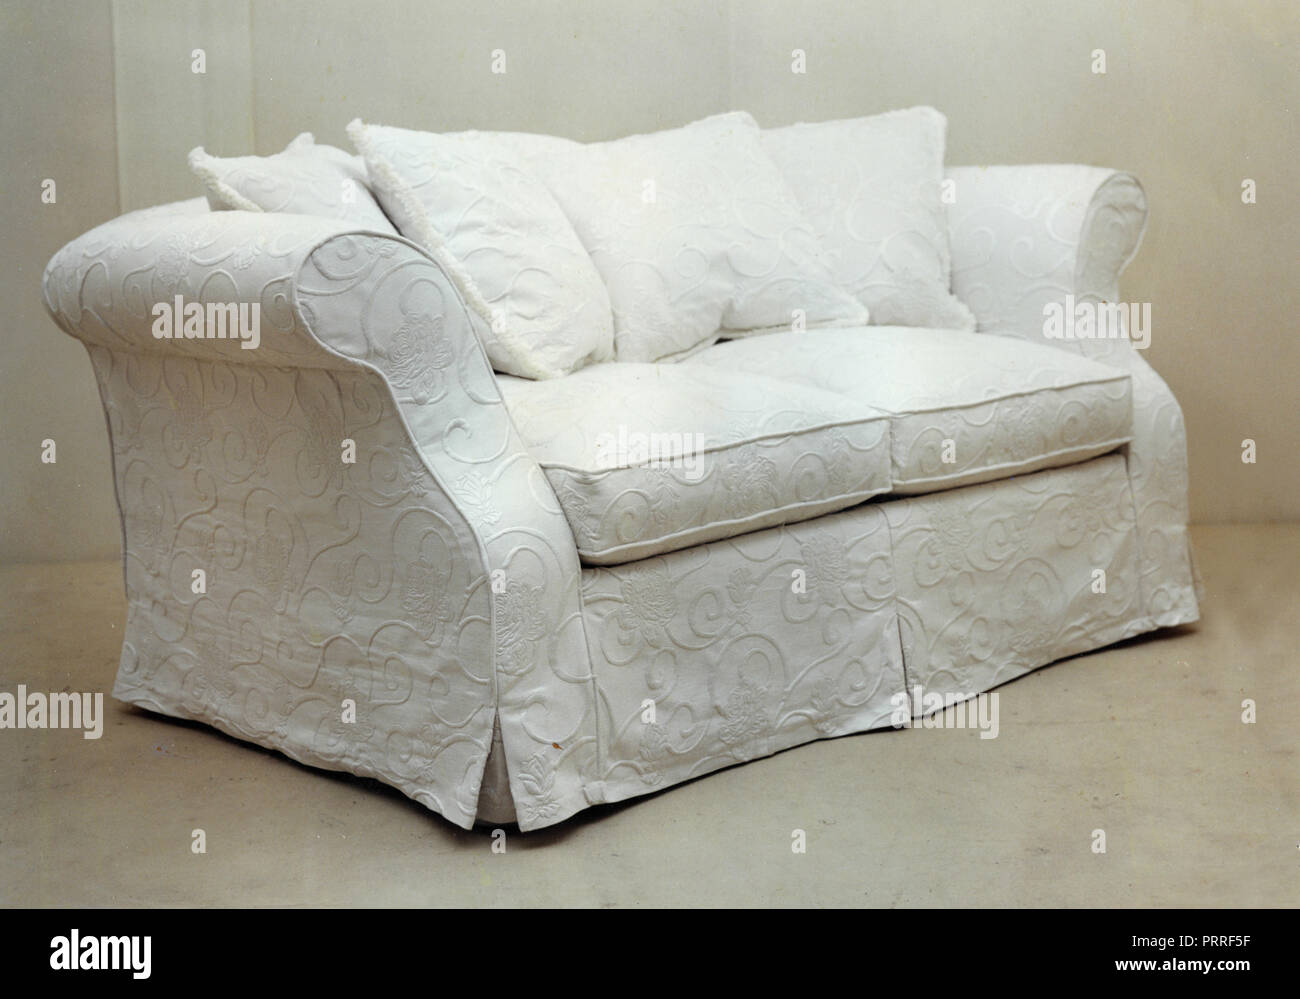 Sofa White 1990s Stock Photo Alamy